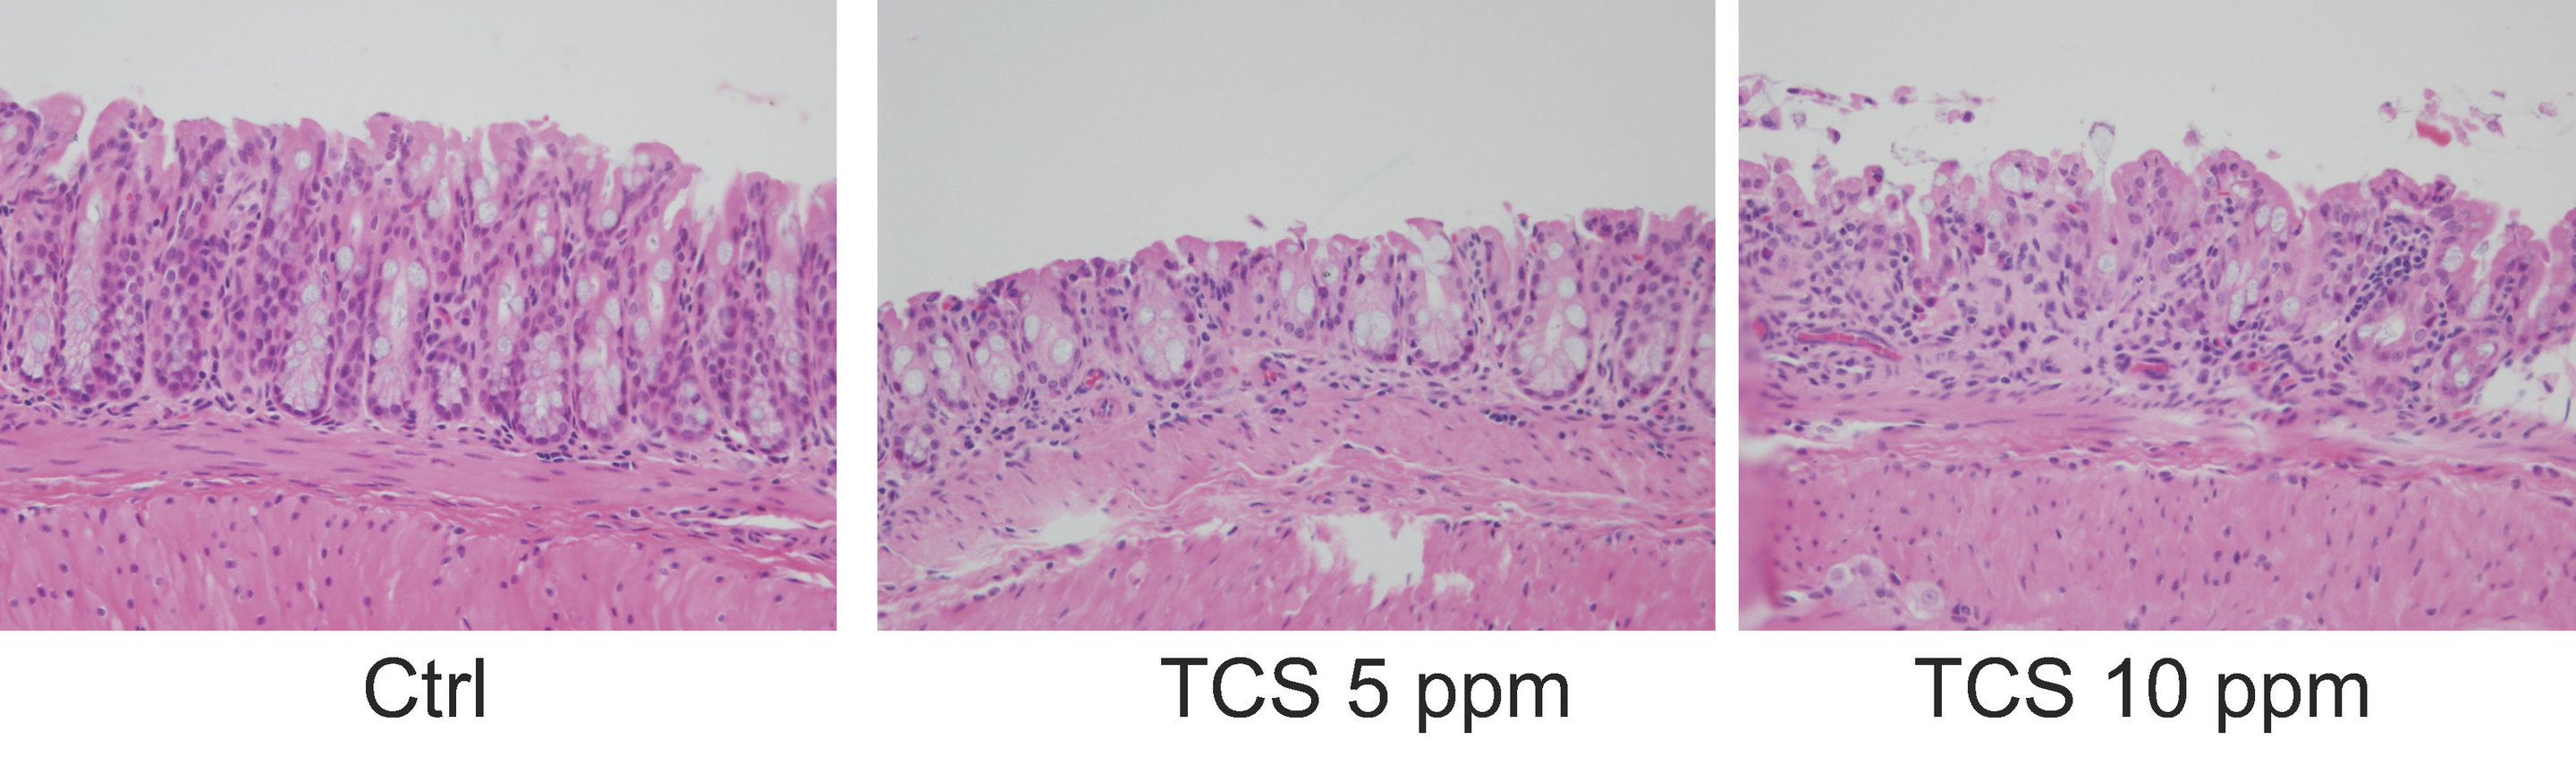 Mouse study links triclosan, a common antimicrobial, to colonic inflammation